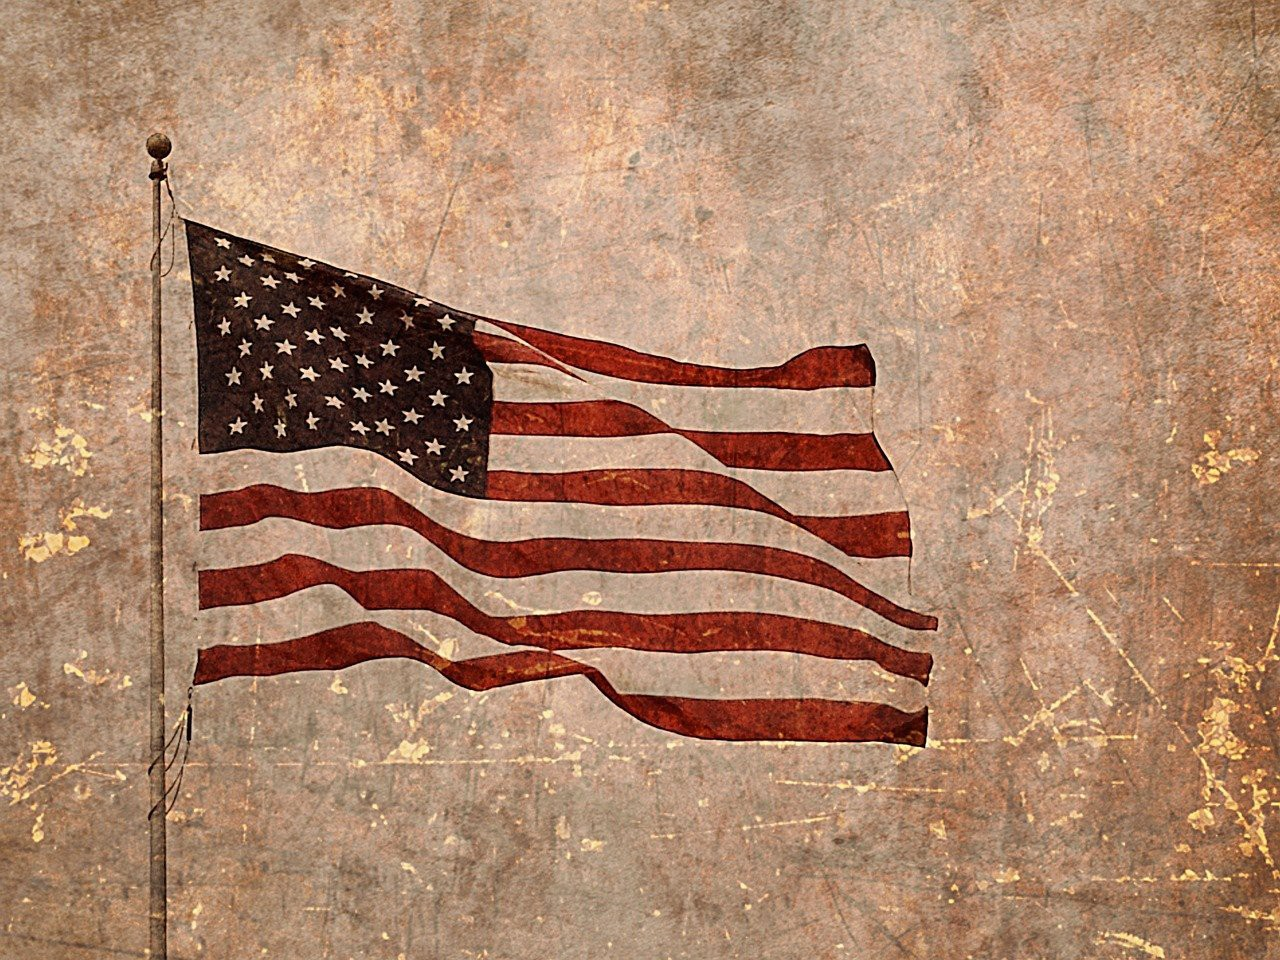 American Flag photo by Pixabay